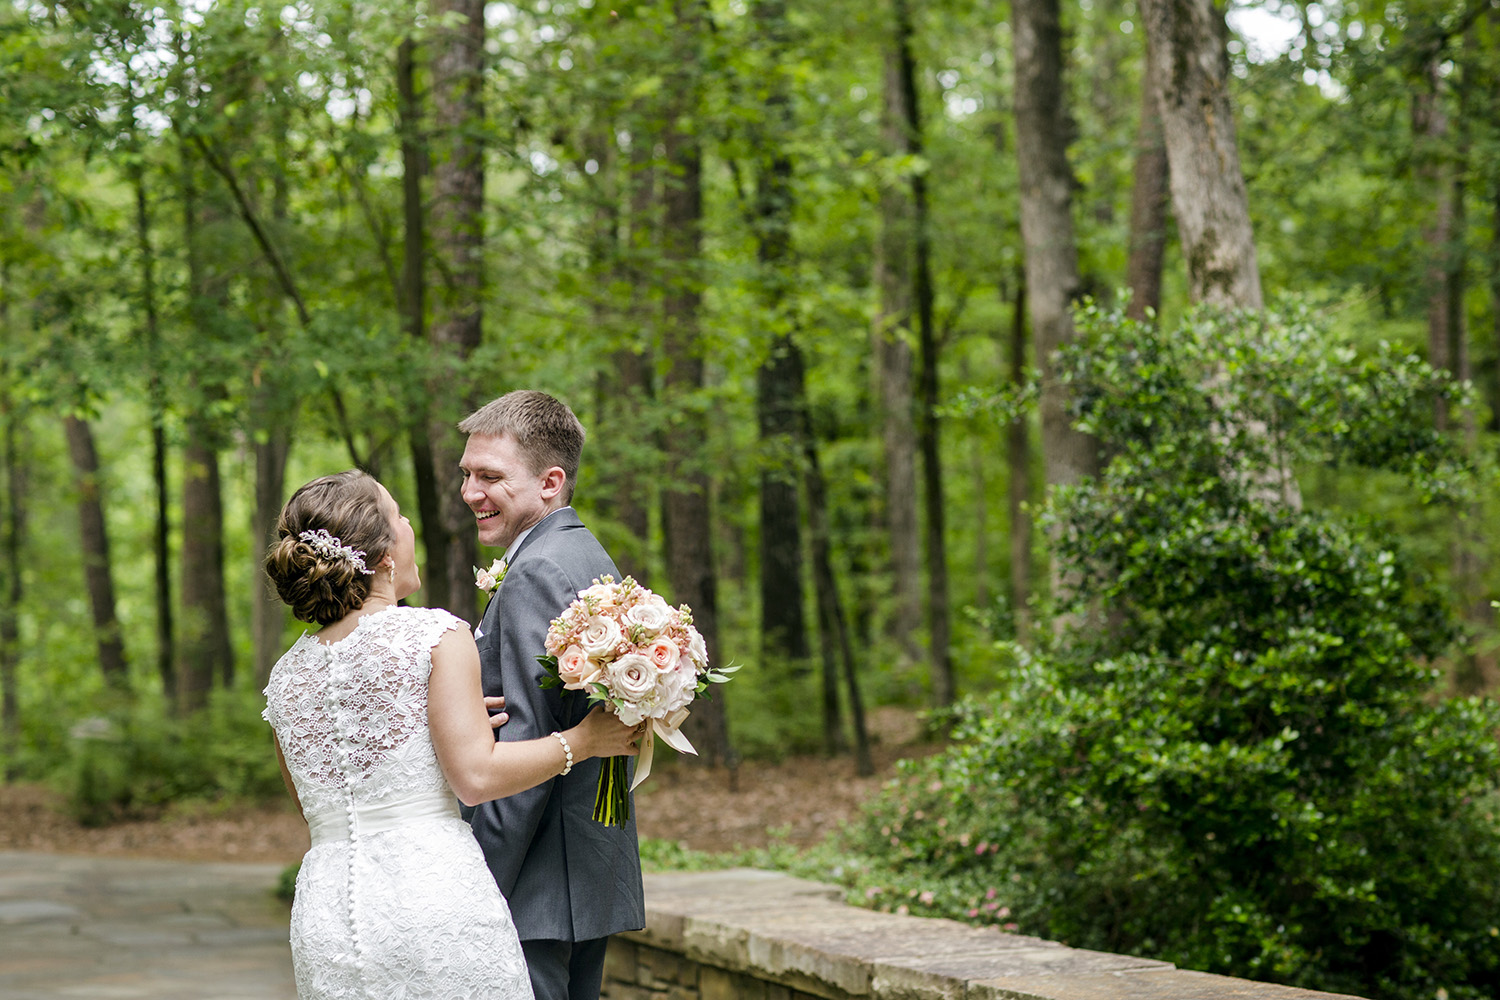 Garvan_Gardens_Wedding_Lindsey_Mark_19.JPG